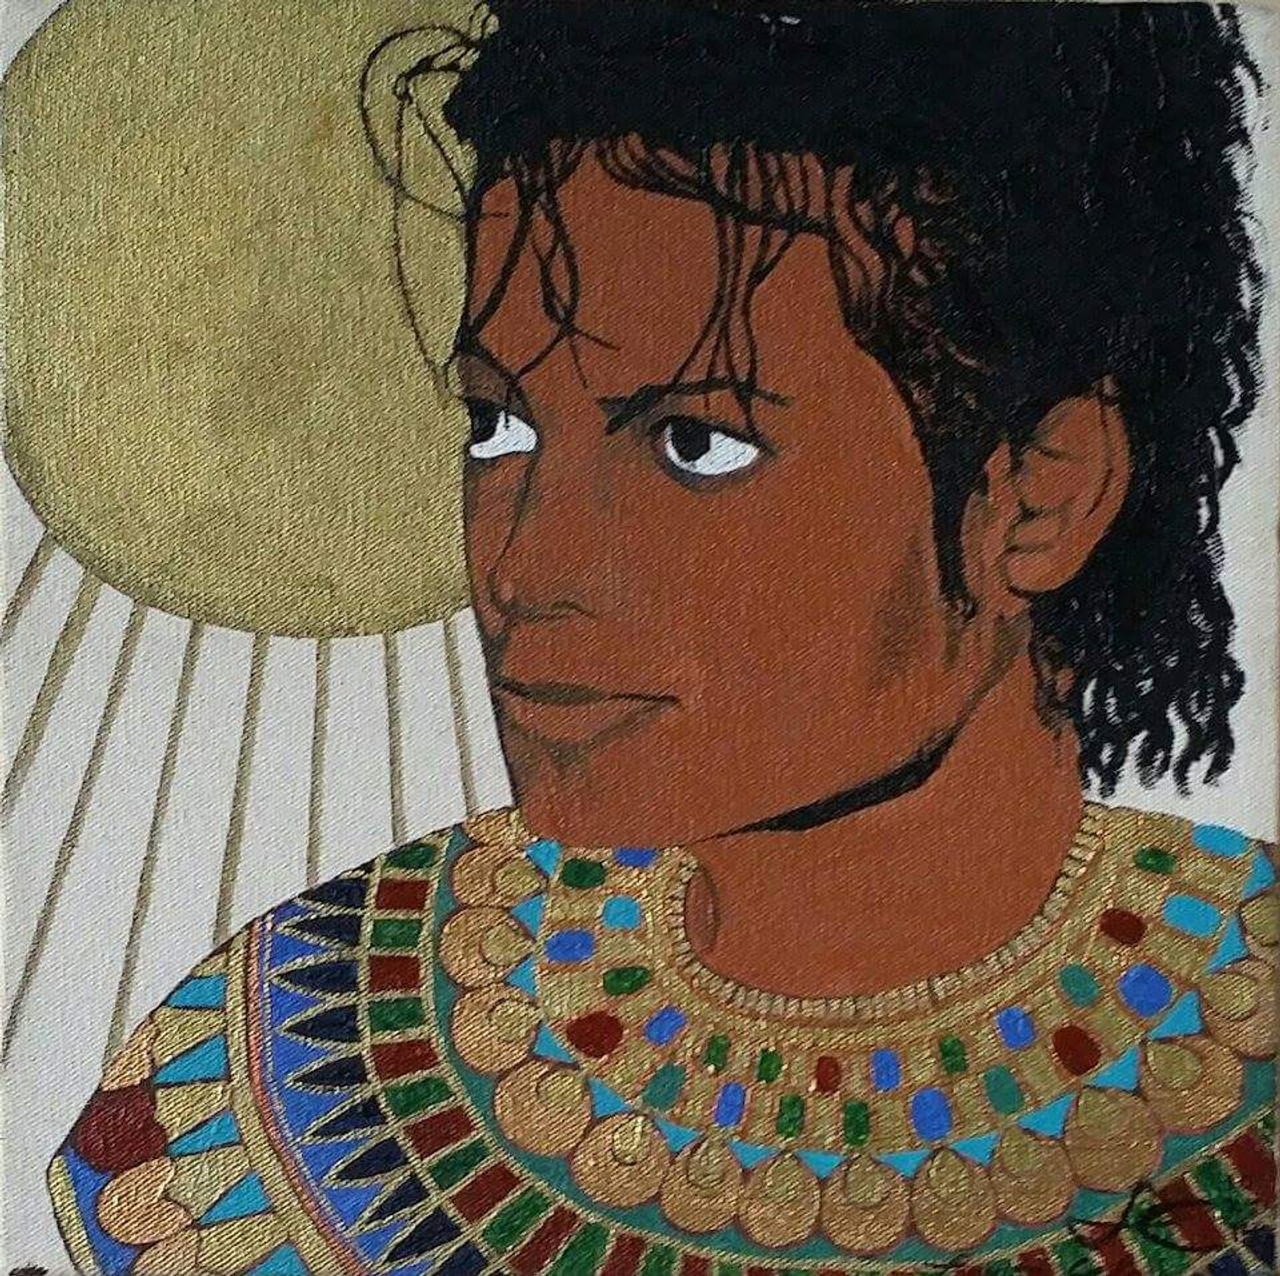 12 x 12 The Sun of RA: MJ (Michael Jackson)